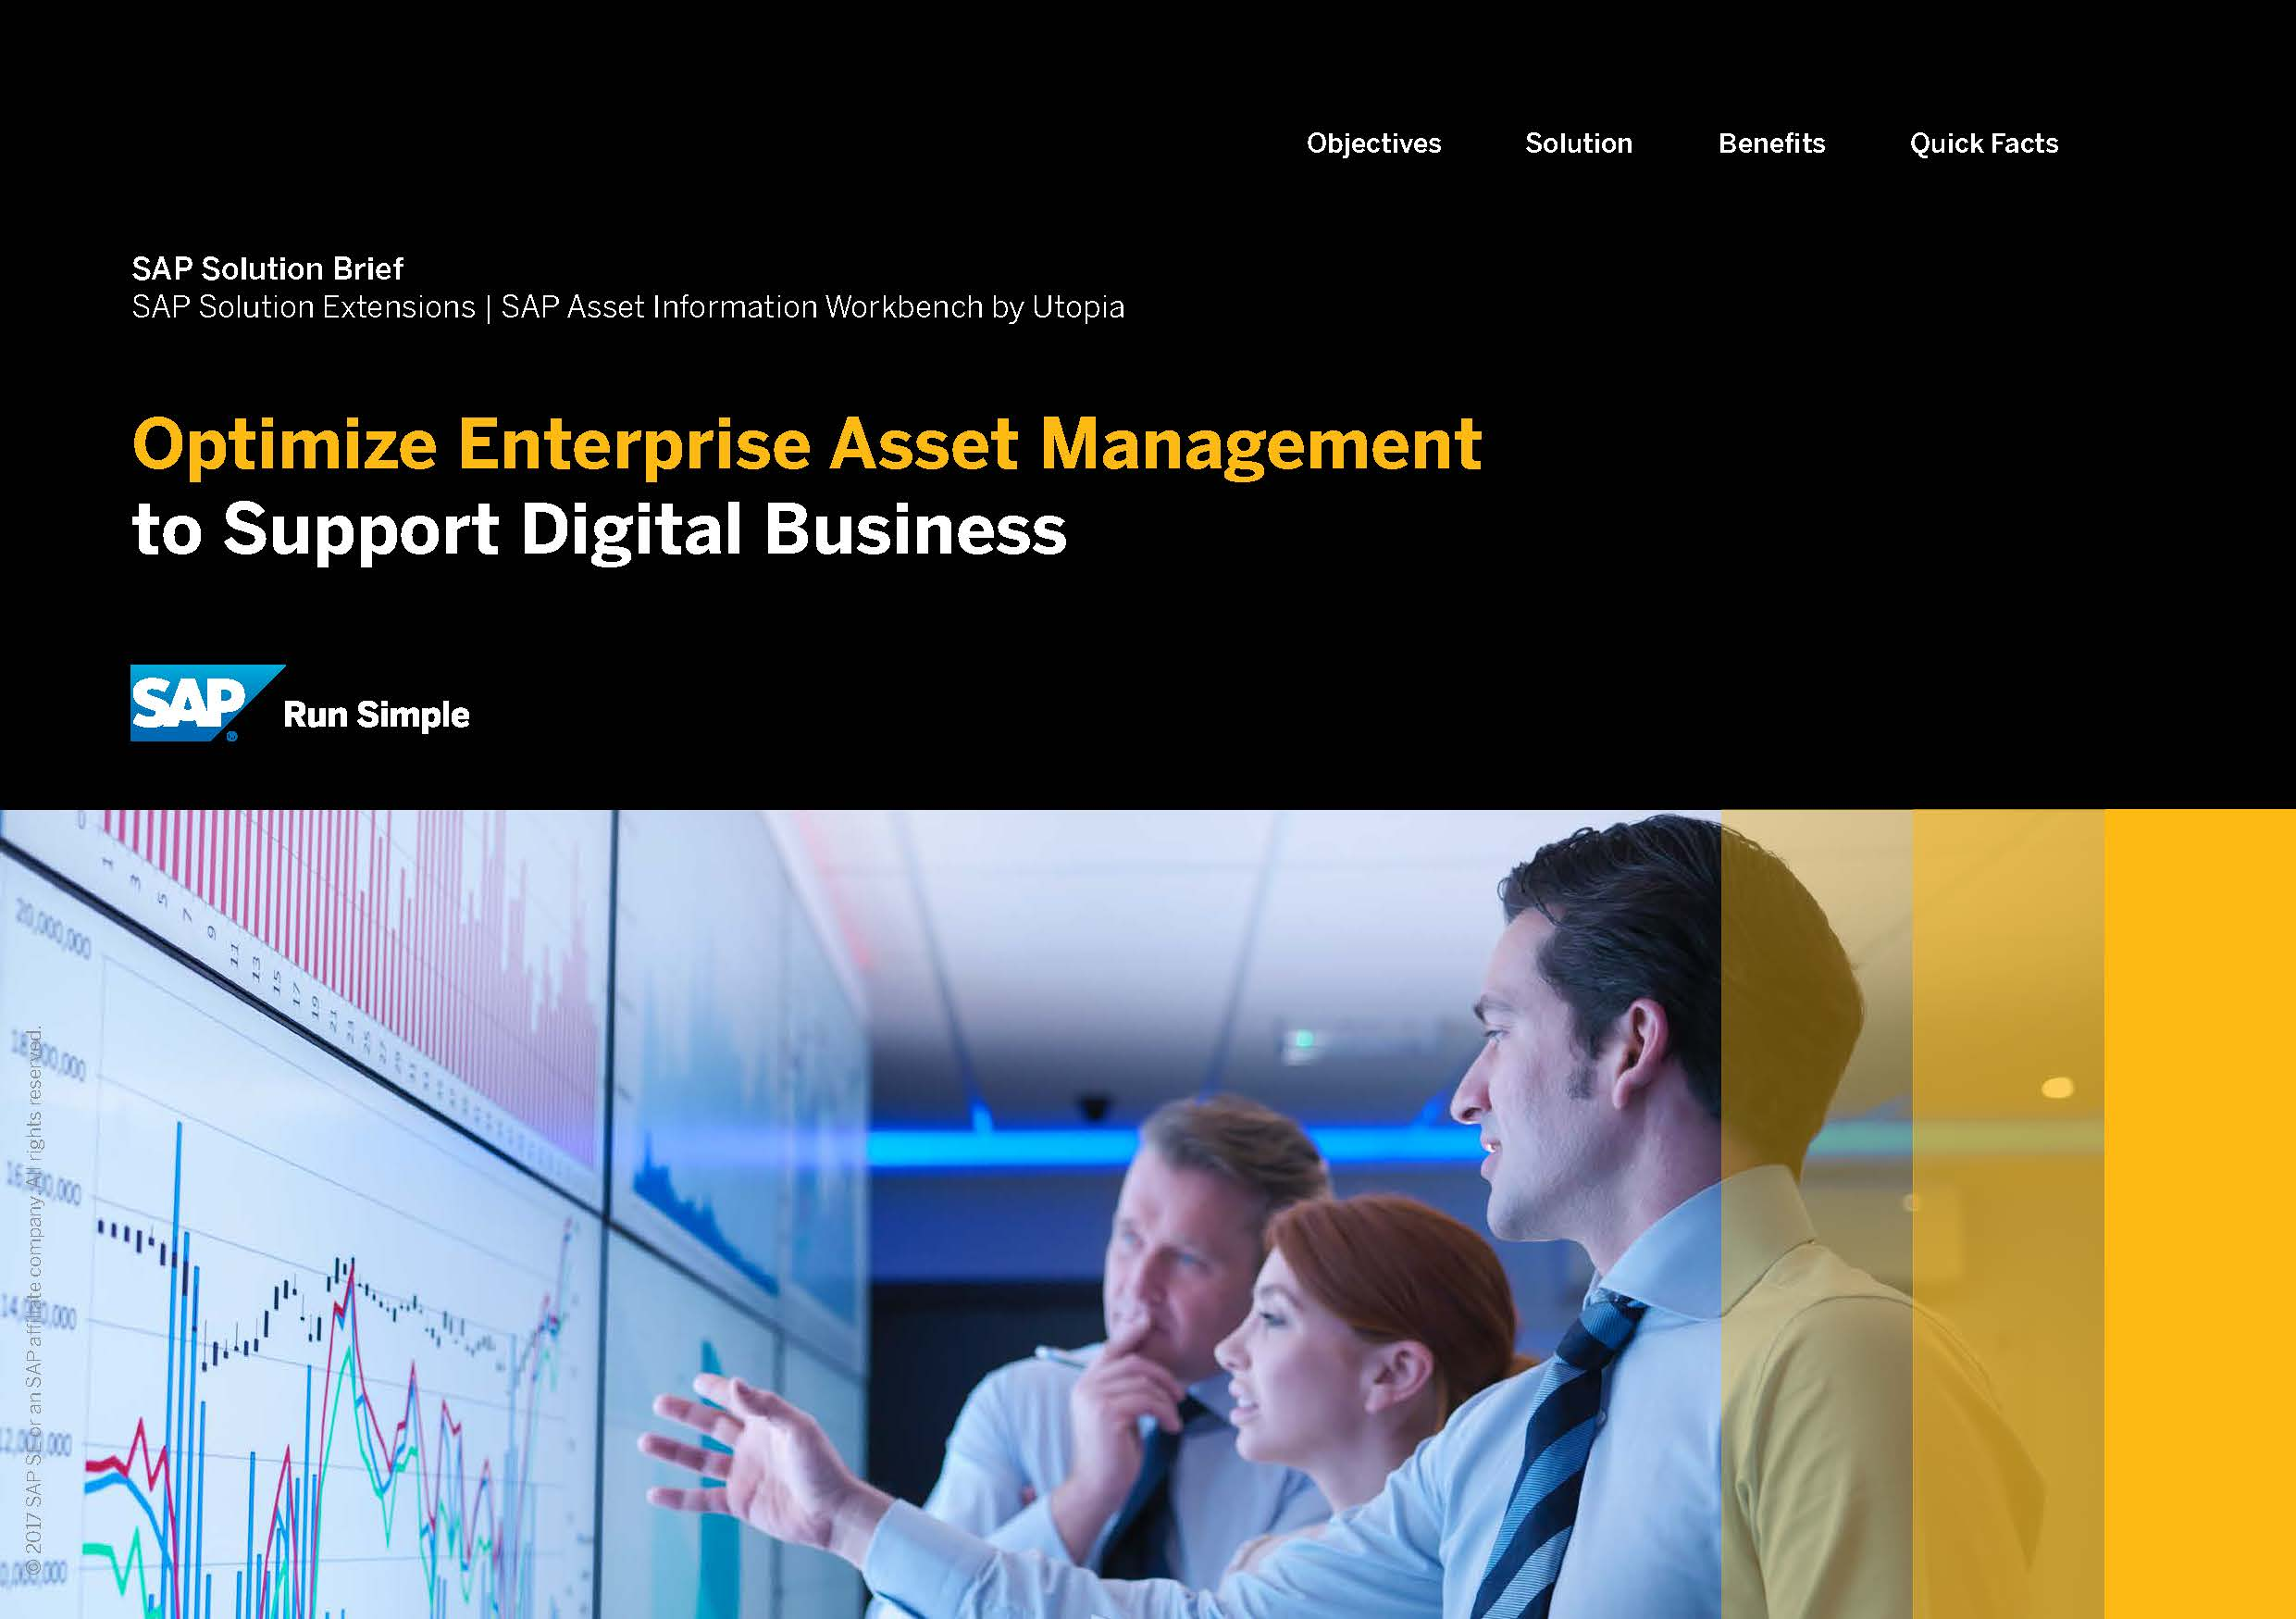 SAP Asset Information Workbench by Utopia Solution Brief (1)_Page_01